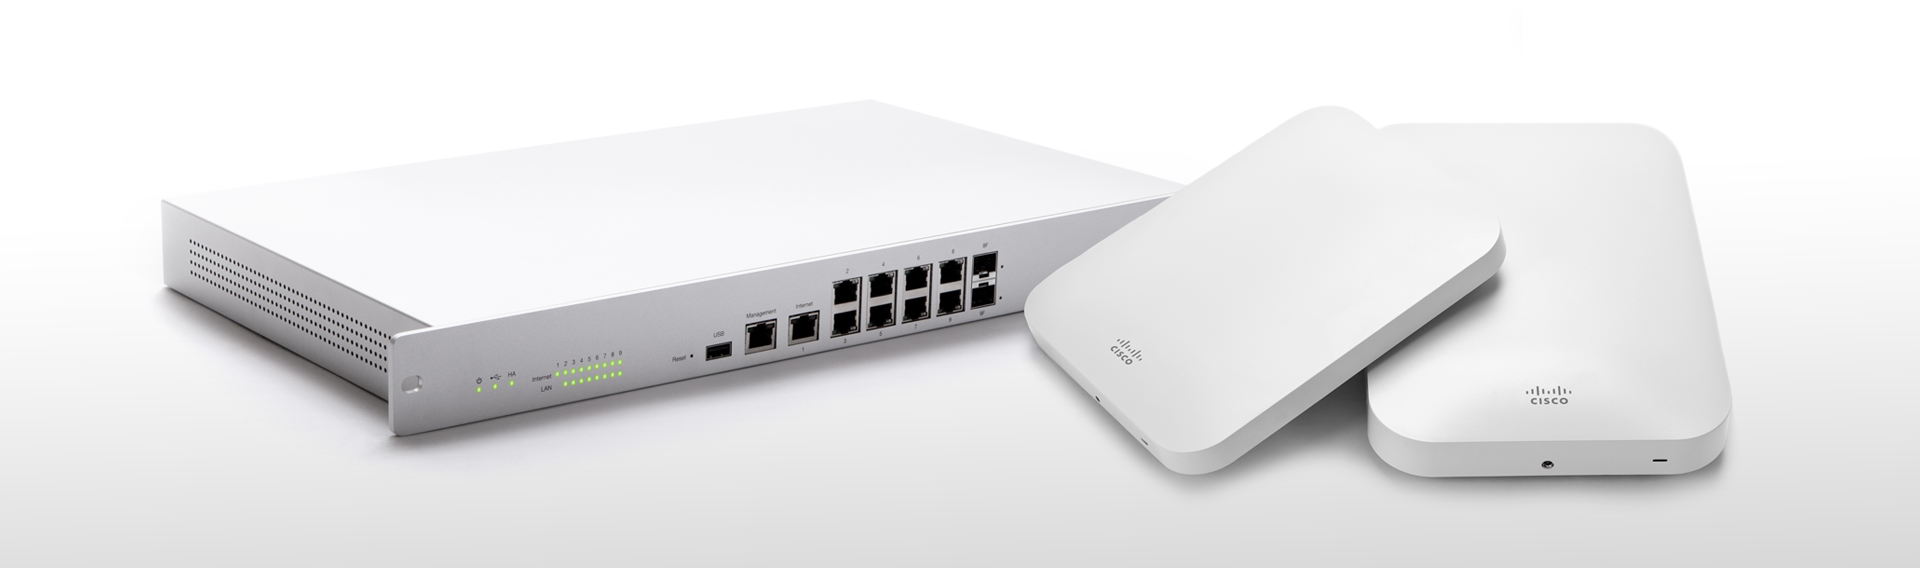 Business Internet routers from meraki